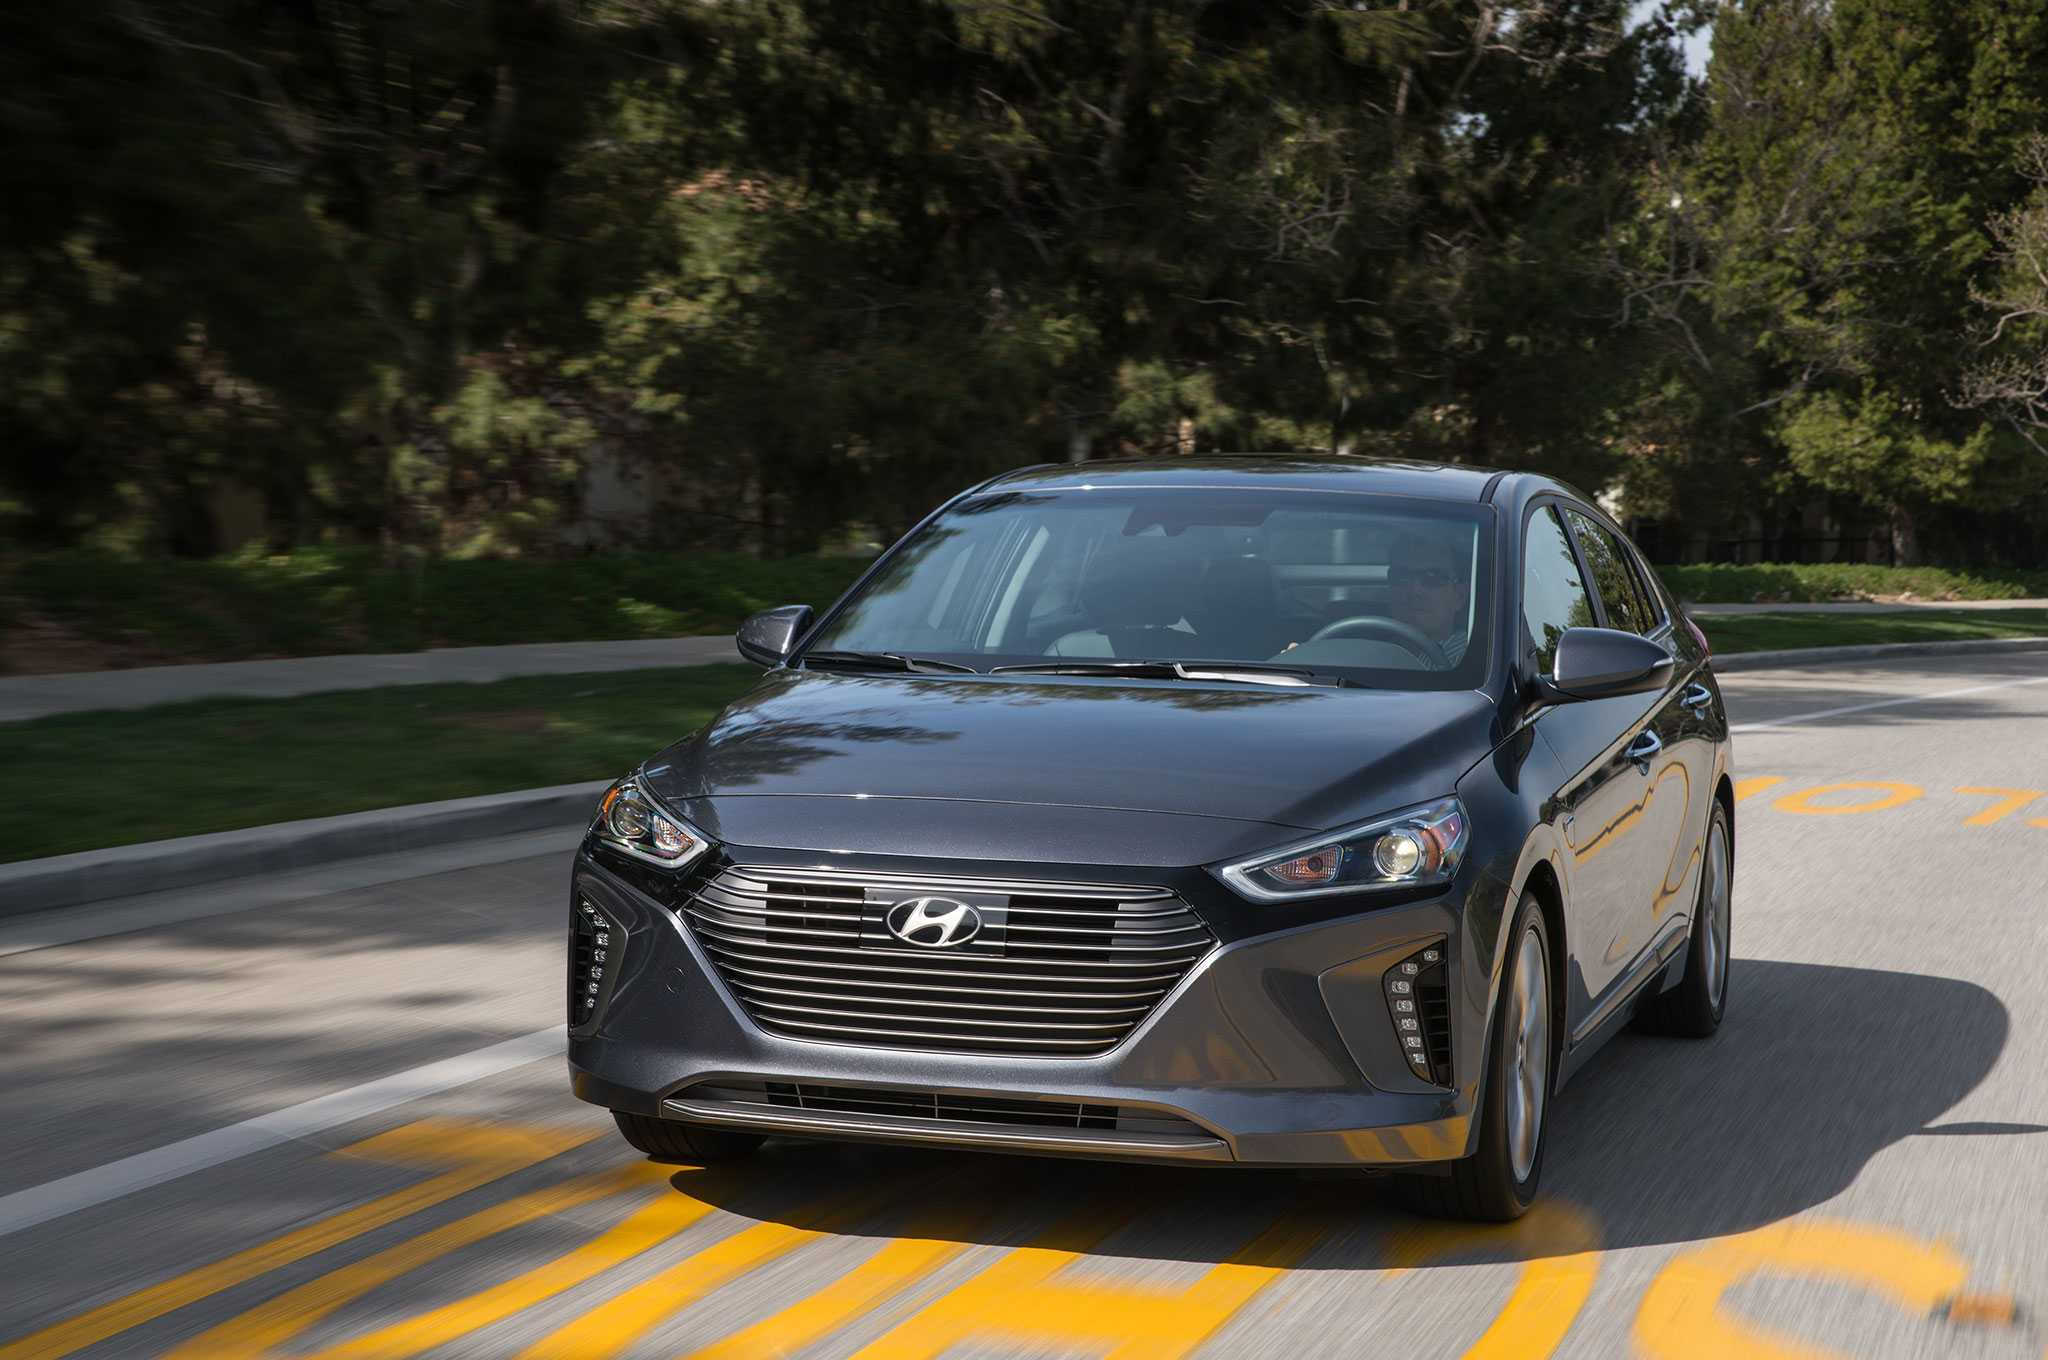 Hyundai Planning To Launch 200-Mile Electric Car In 2018